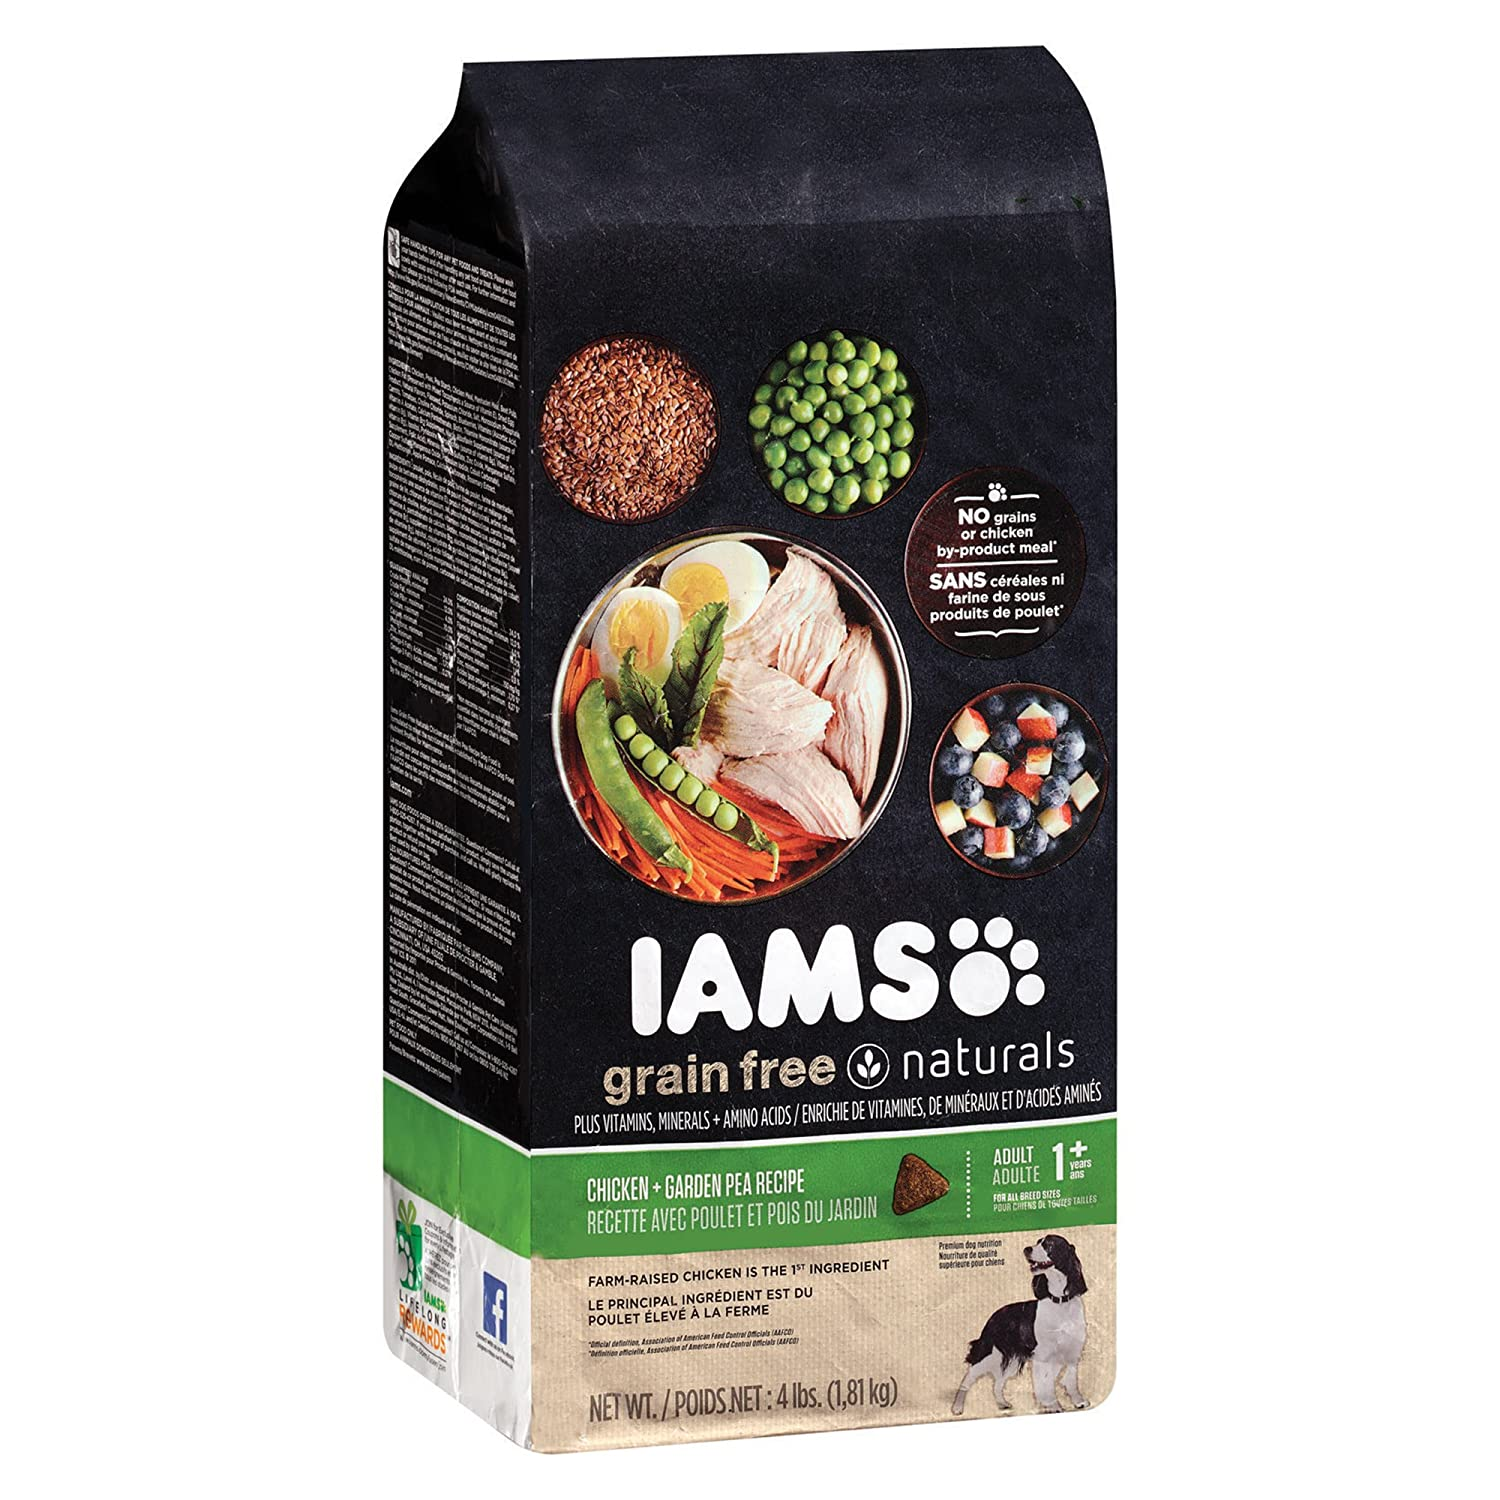 Nov 02,  · The Iams Naturals product line includes 4 dry dog foods. Each recipe below includes its related AAFCO nutrient profile when available on the product's official webpage: G rowth, M aintenance, A ll Life Stages, S upplemental or U nspecified.